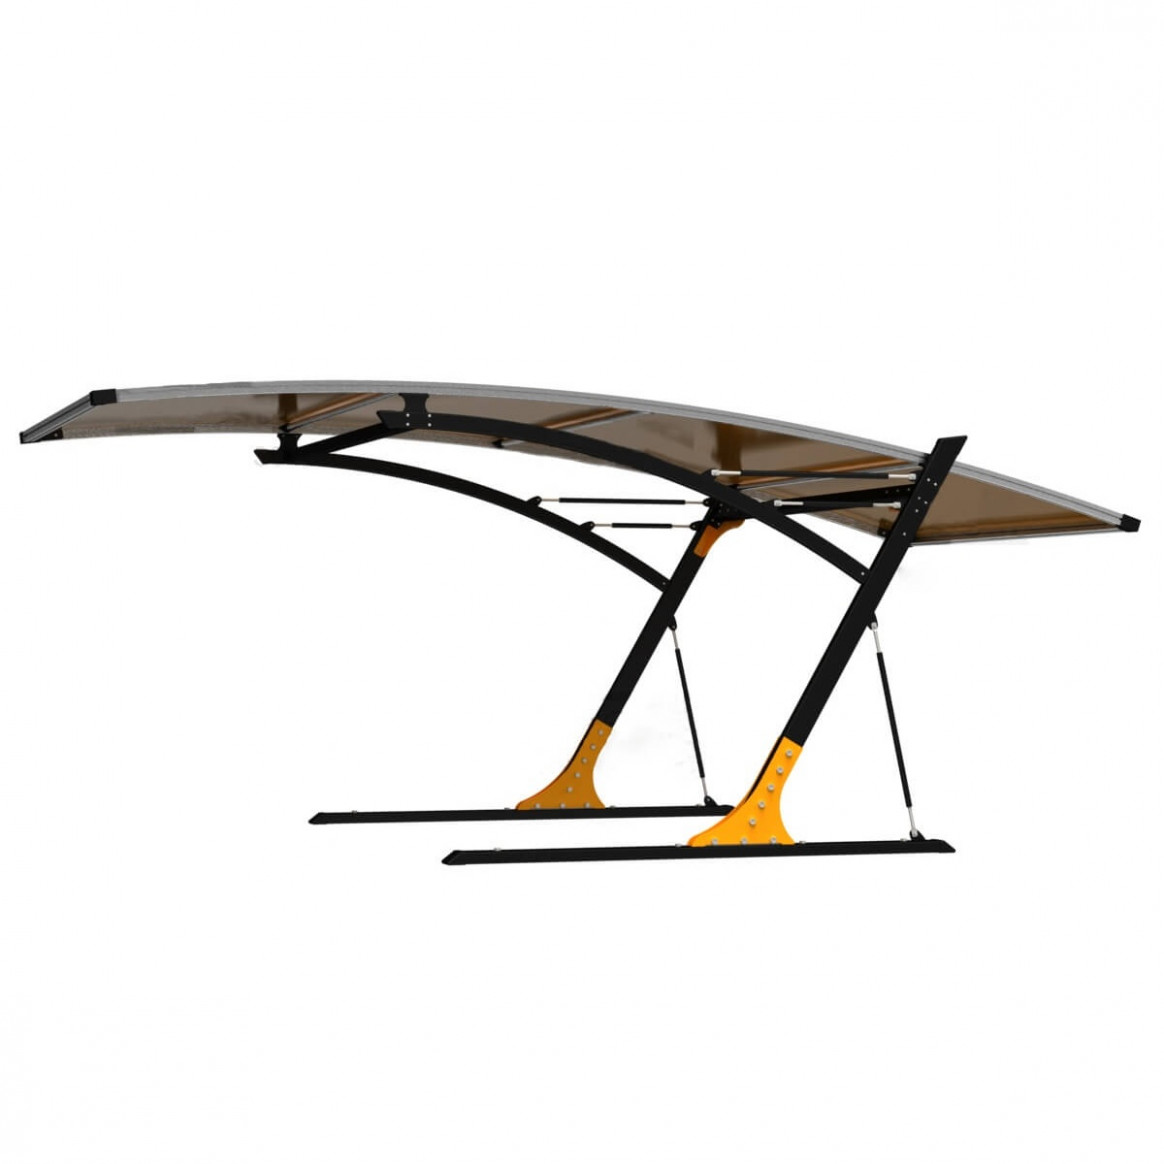 Park In Style Single/Double Arched Canopy Carport Carport Contemporary Furniture